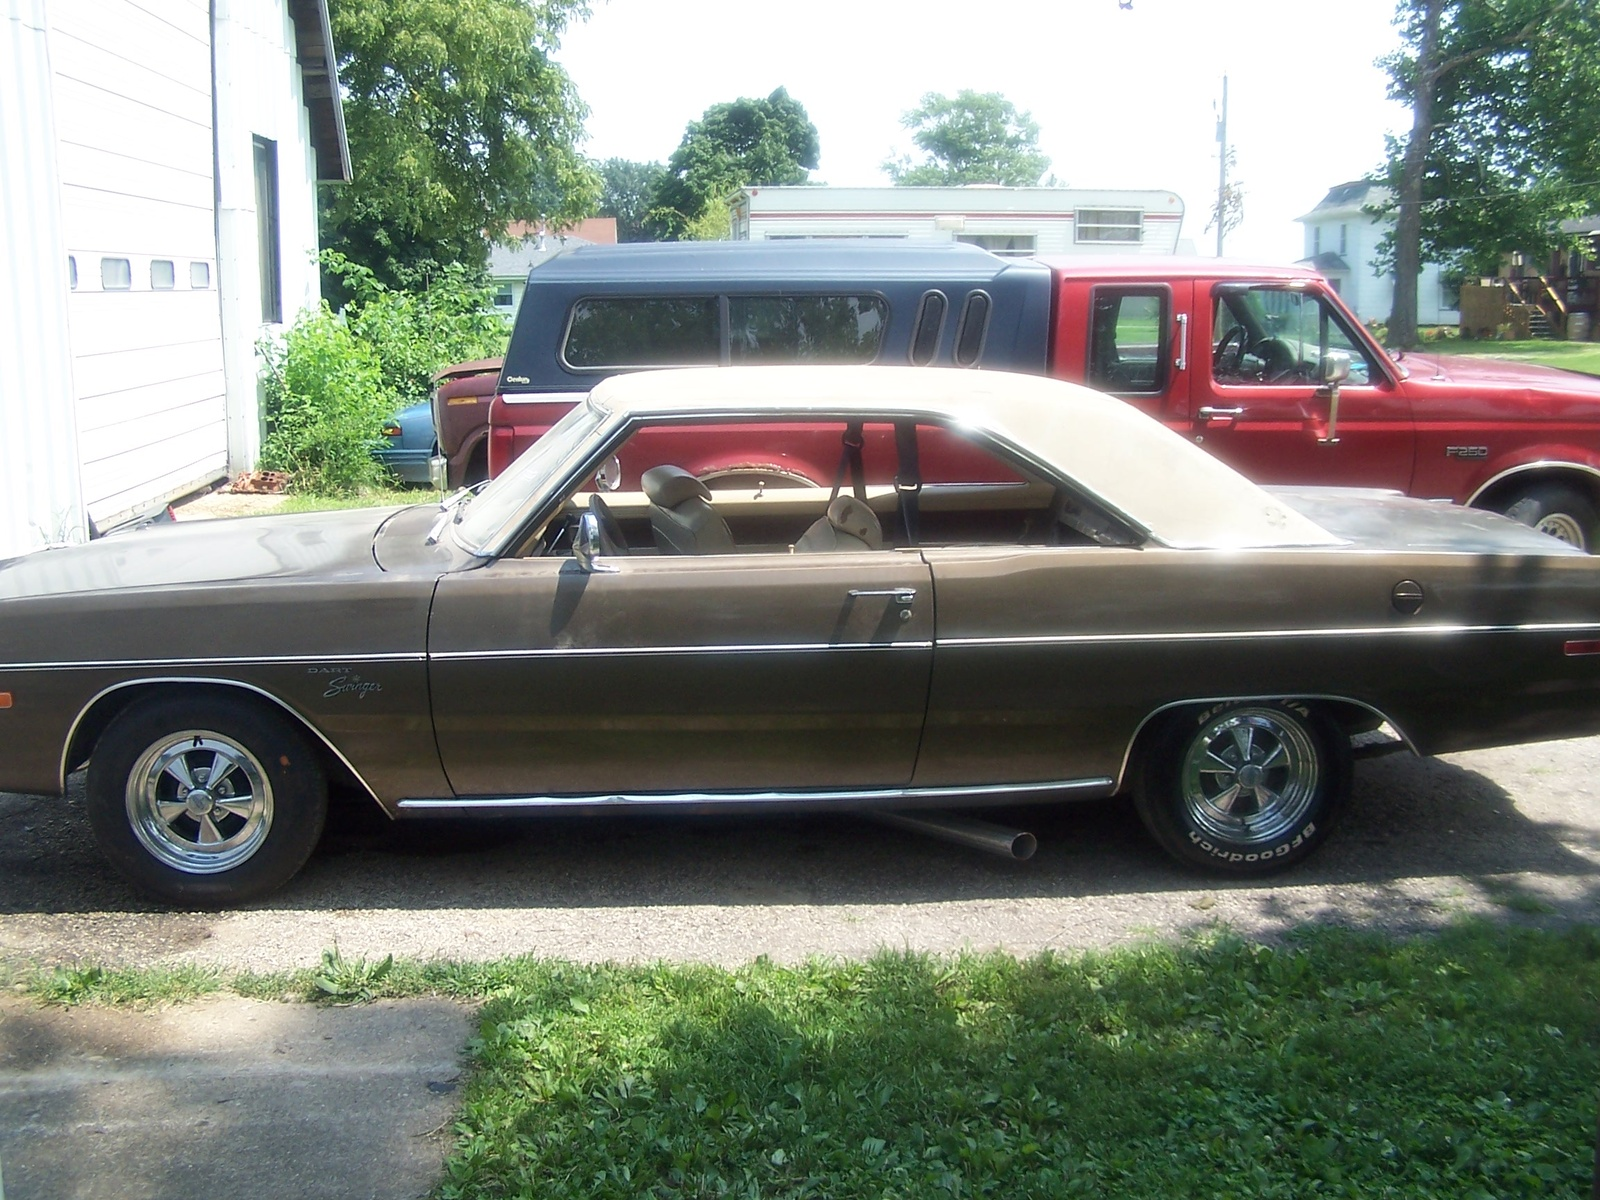 Coro in addition Ford Falcon further 1966 Dodge Charger Pictures C6495 pi9397608 moreover 1974 Dodge Dart Pictures C6572 pi20824335 additionally 1972 Dodge Dart Pictures C6570 pi35802593. on 1965 dodge power wagon